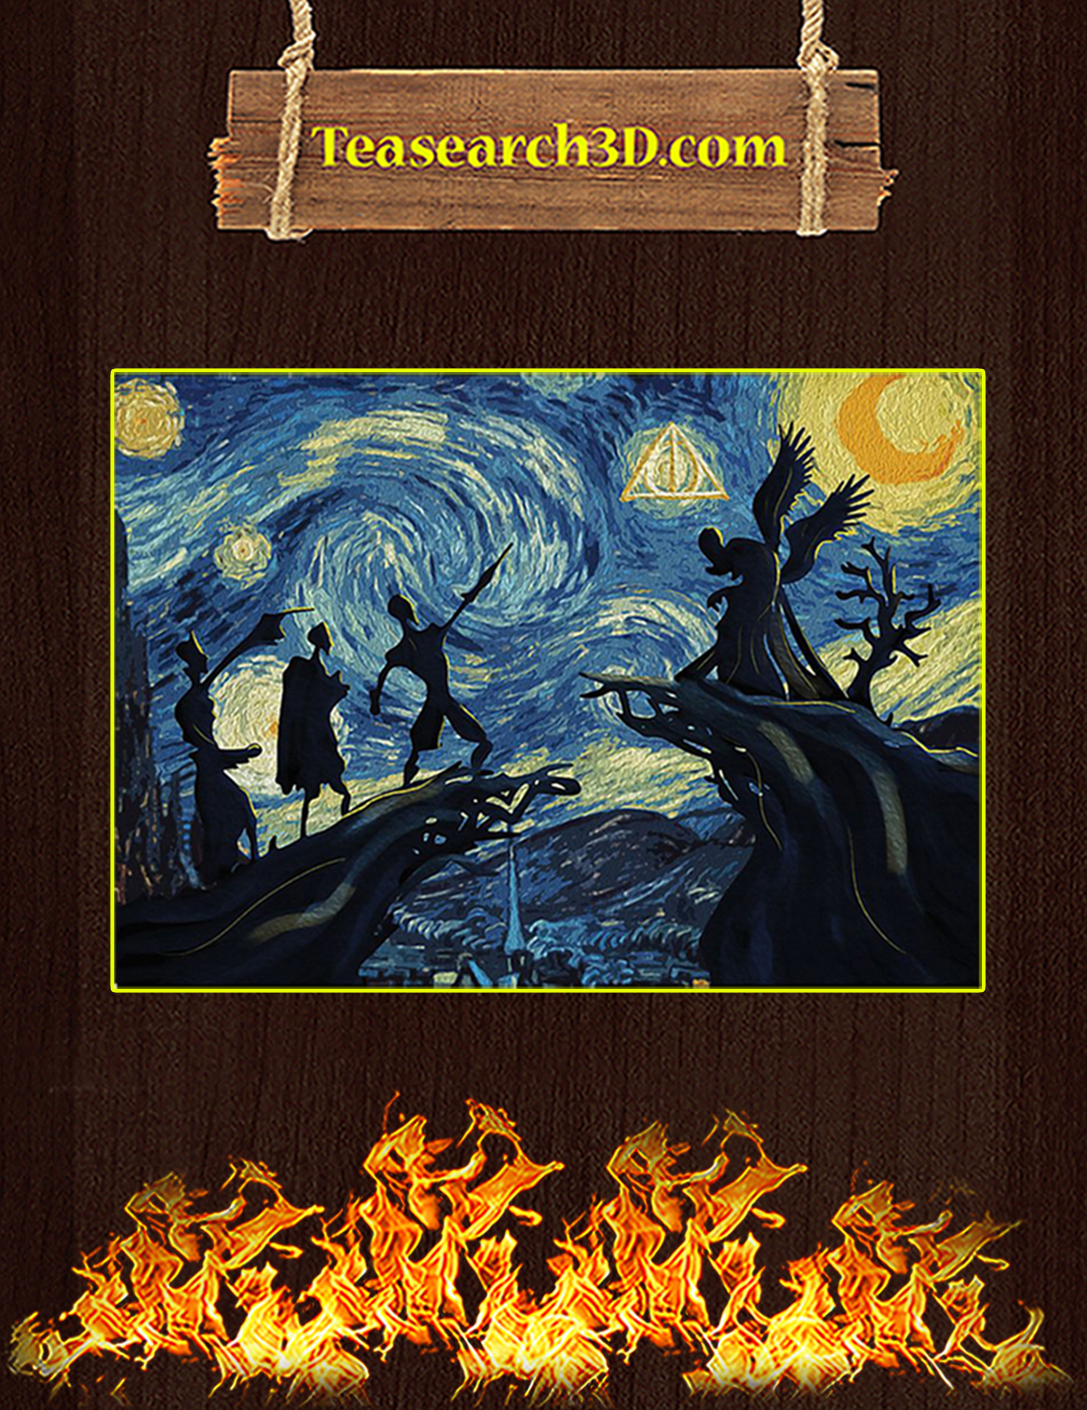 Starry night van gogh deathly hallows harry potter poster A2